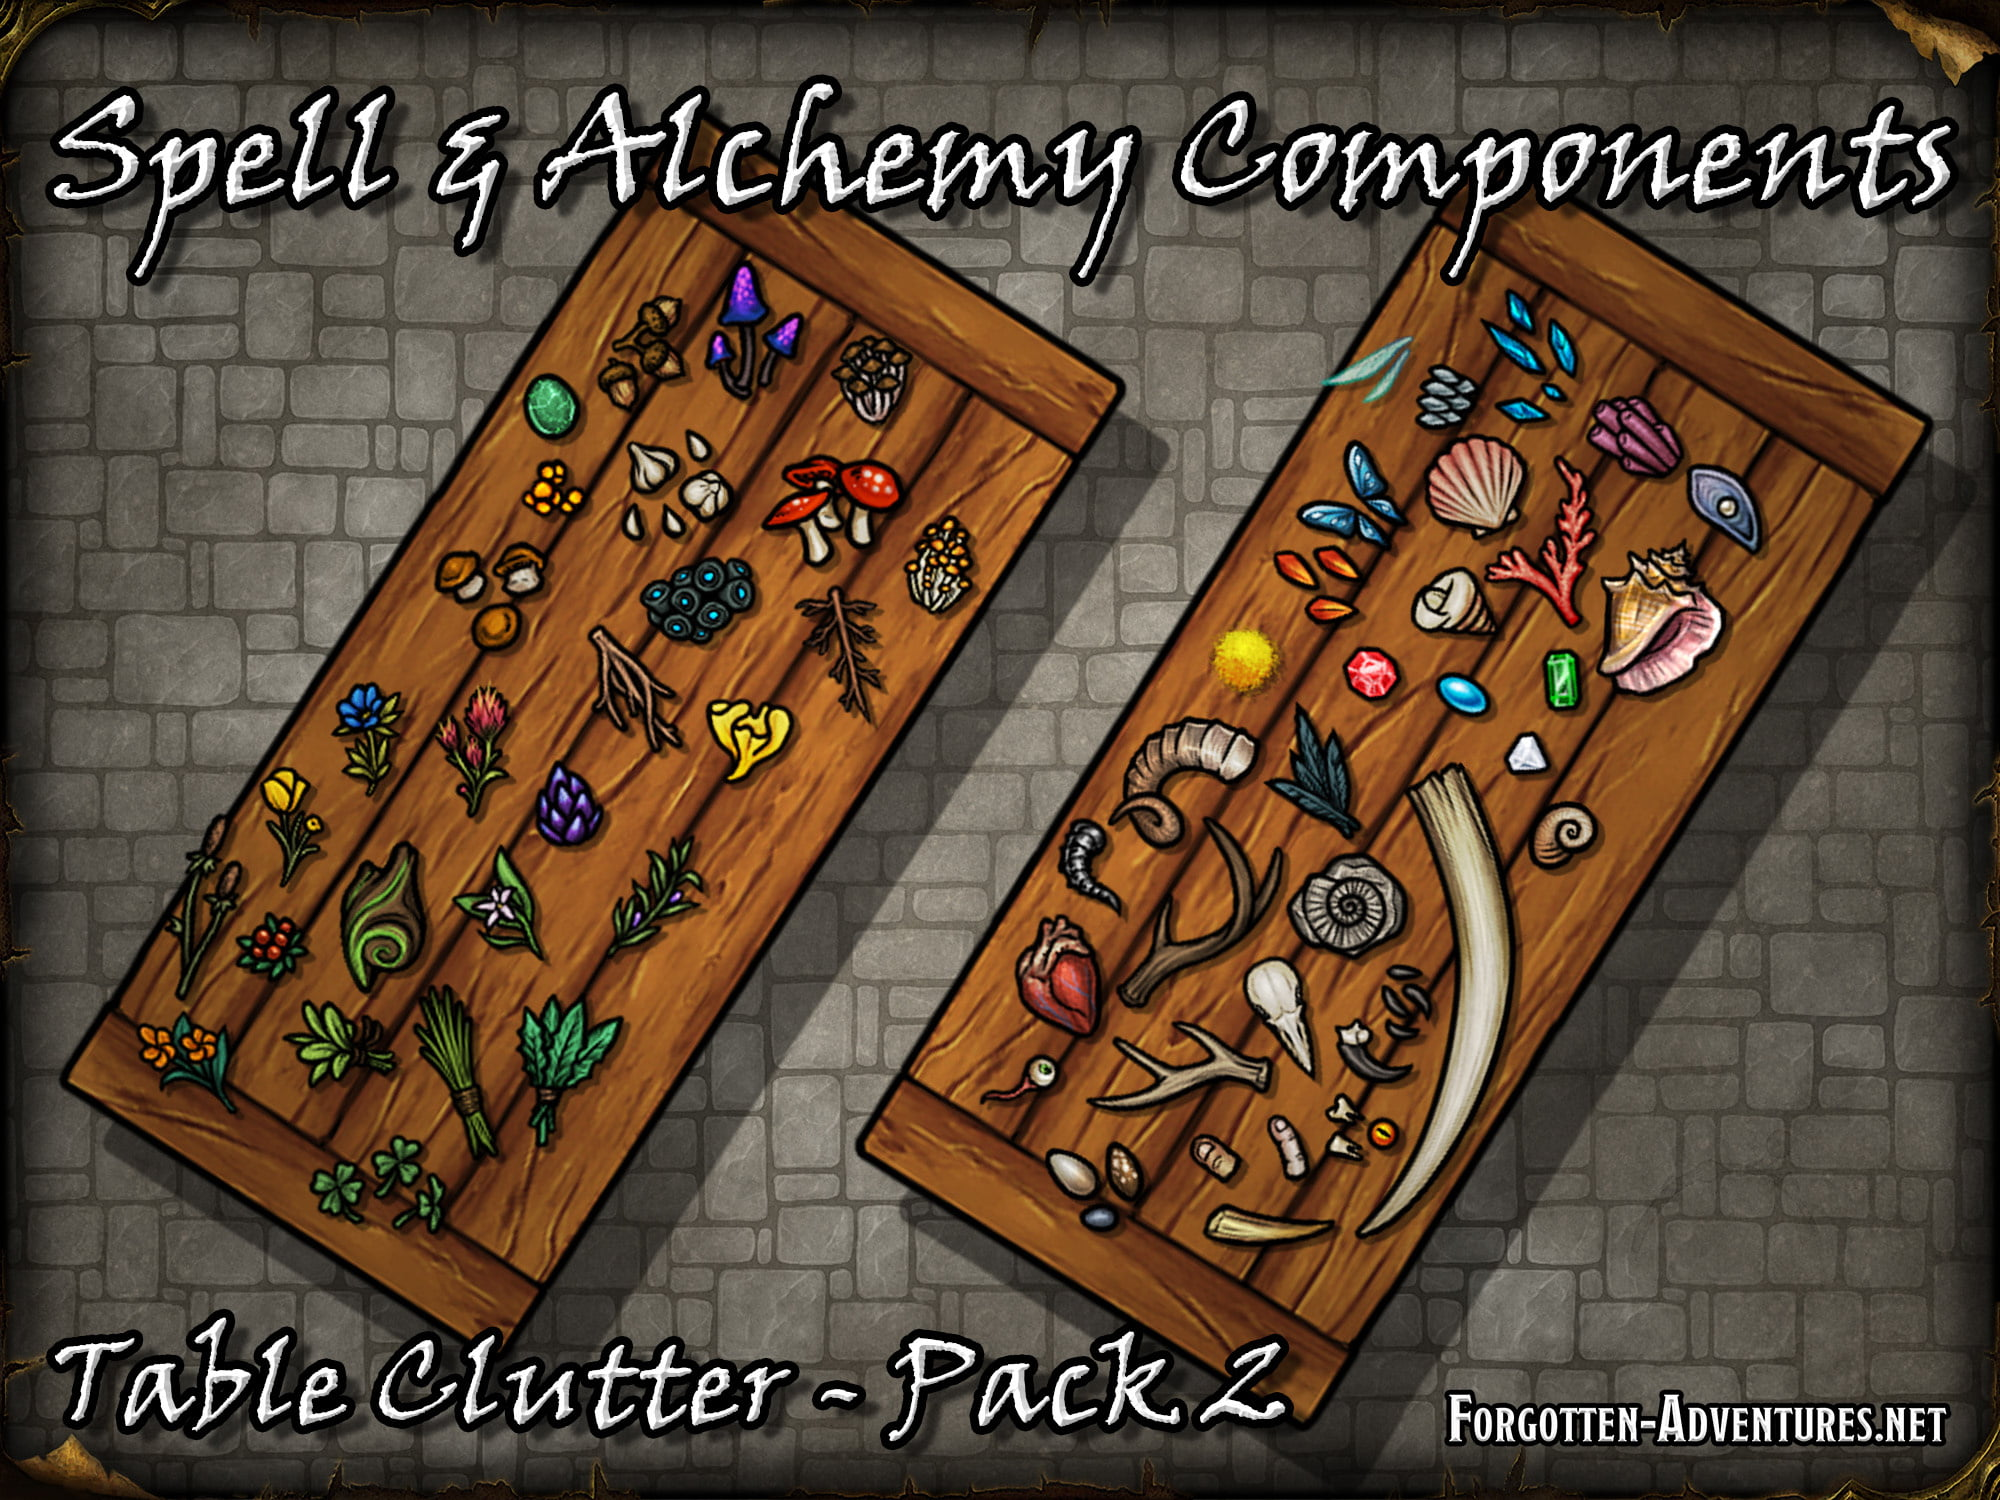 Table Clutter – Pack 2